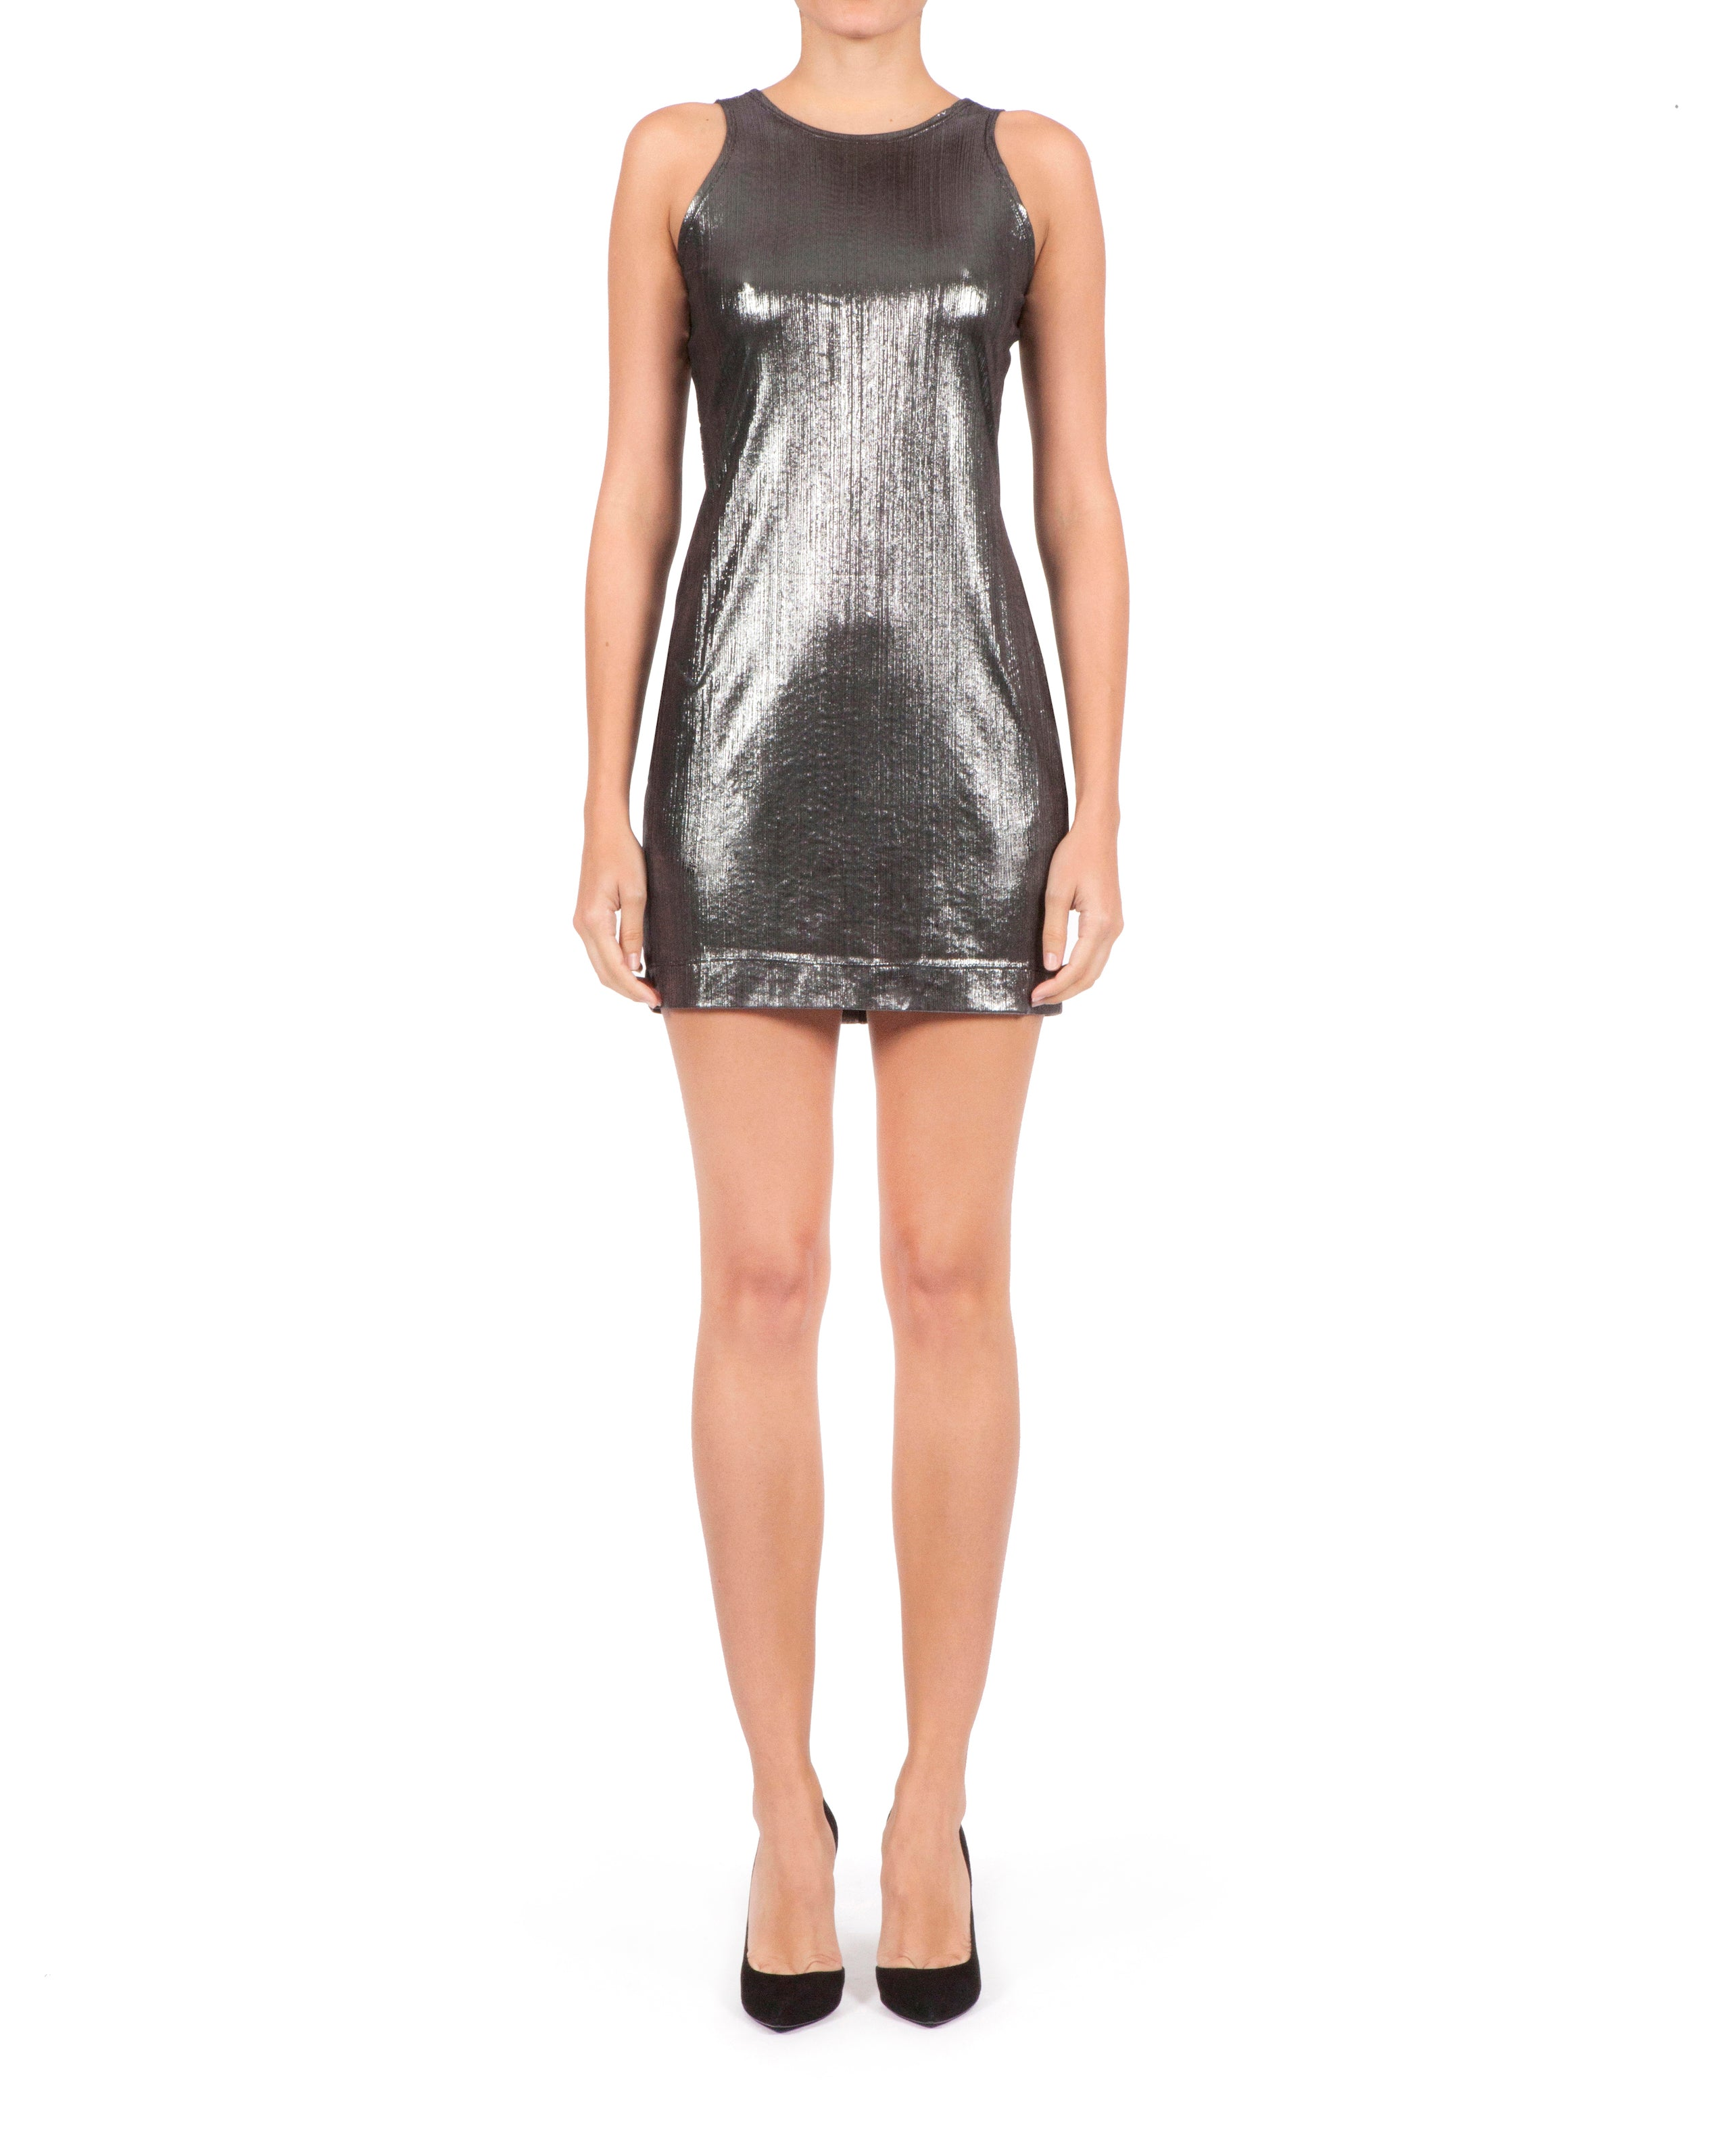 Dalia Dress - Metallic Silver